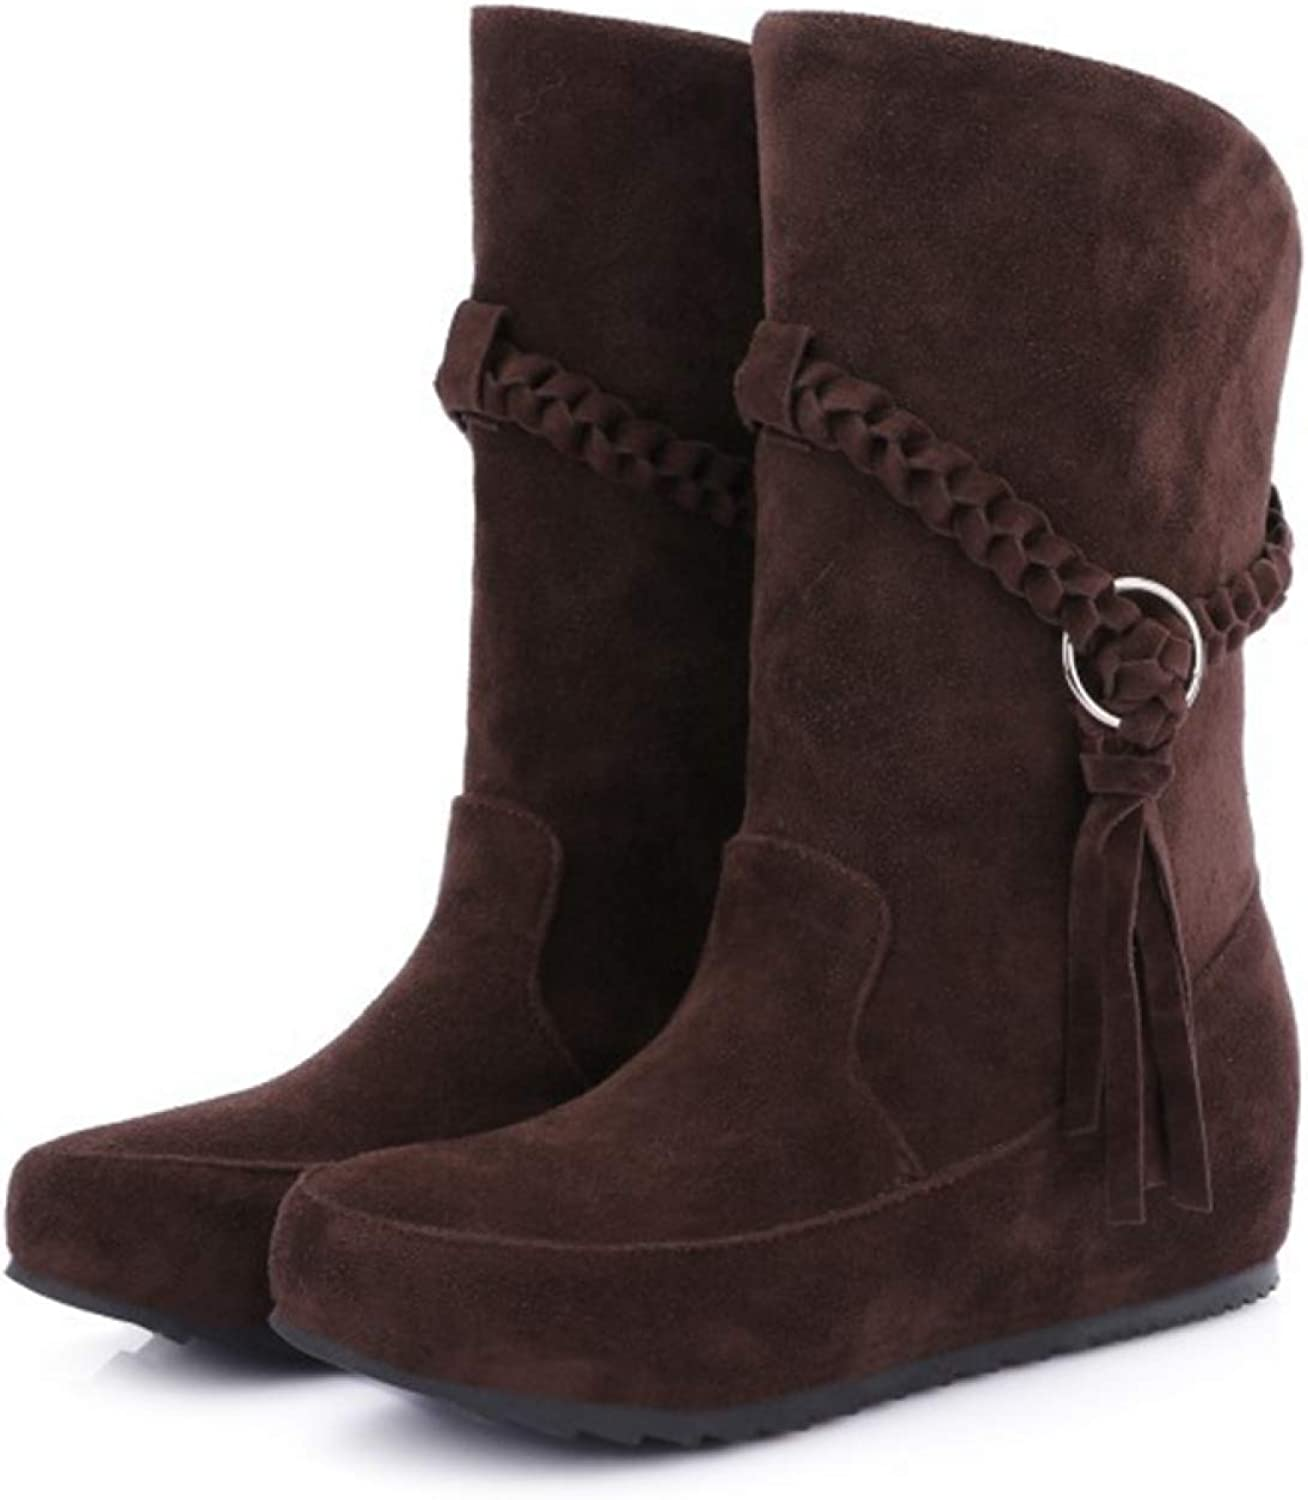 Women's Slip On Mid Calf Boots Fringe Tassel Decoration Suede Upper Slouch Calf High Flat Mid-Calf Boots